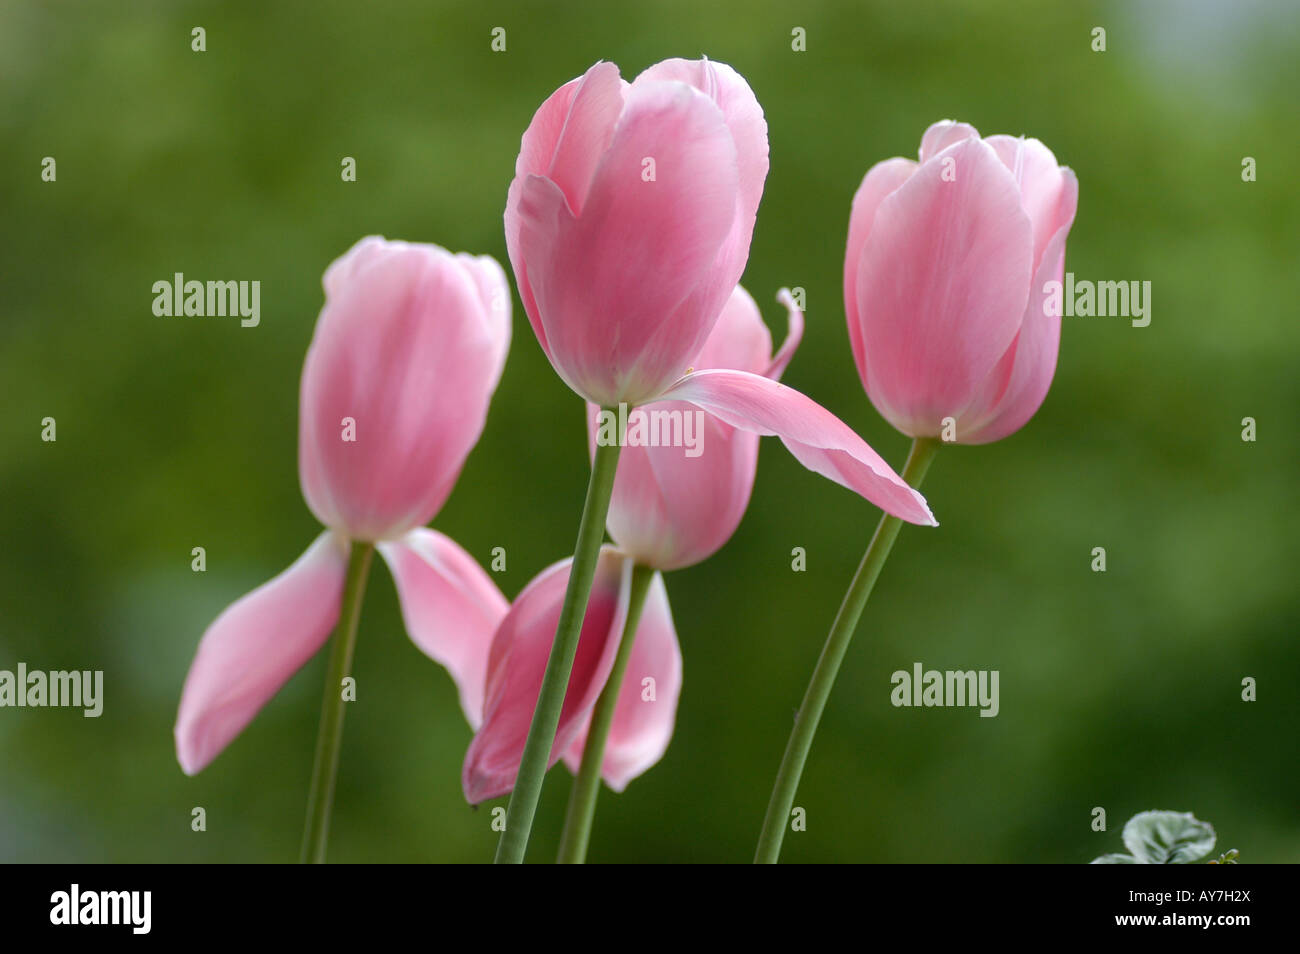 tulipa tulip delight flower stockfotos tulipa tulip delight flower bilder alamy. Black Bedroom Furniture Sets. Home Design Ideas